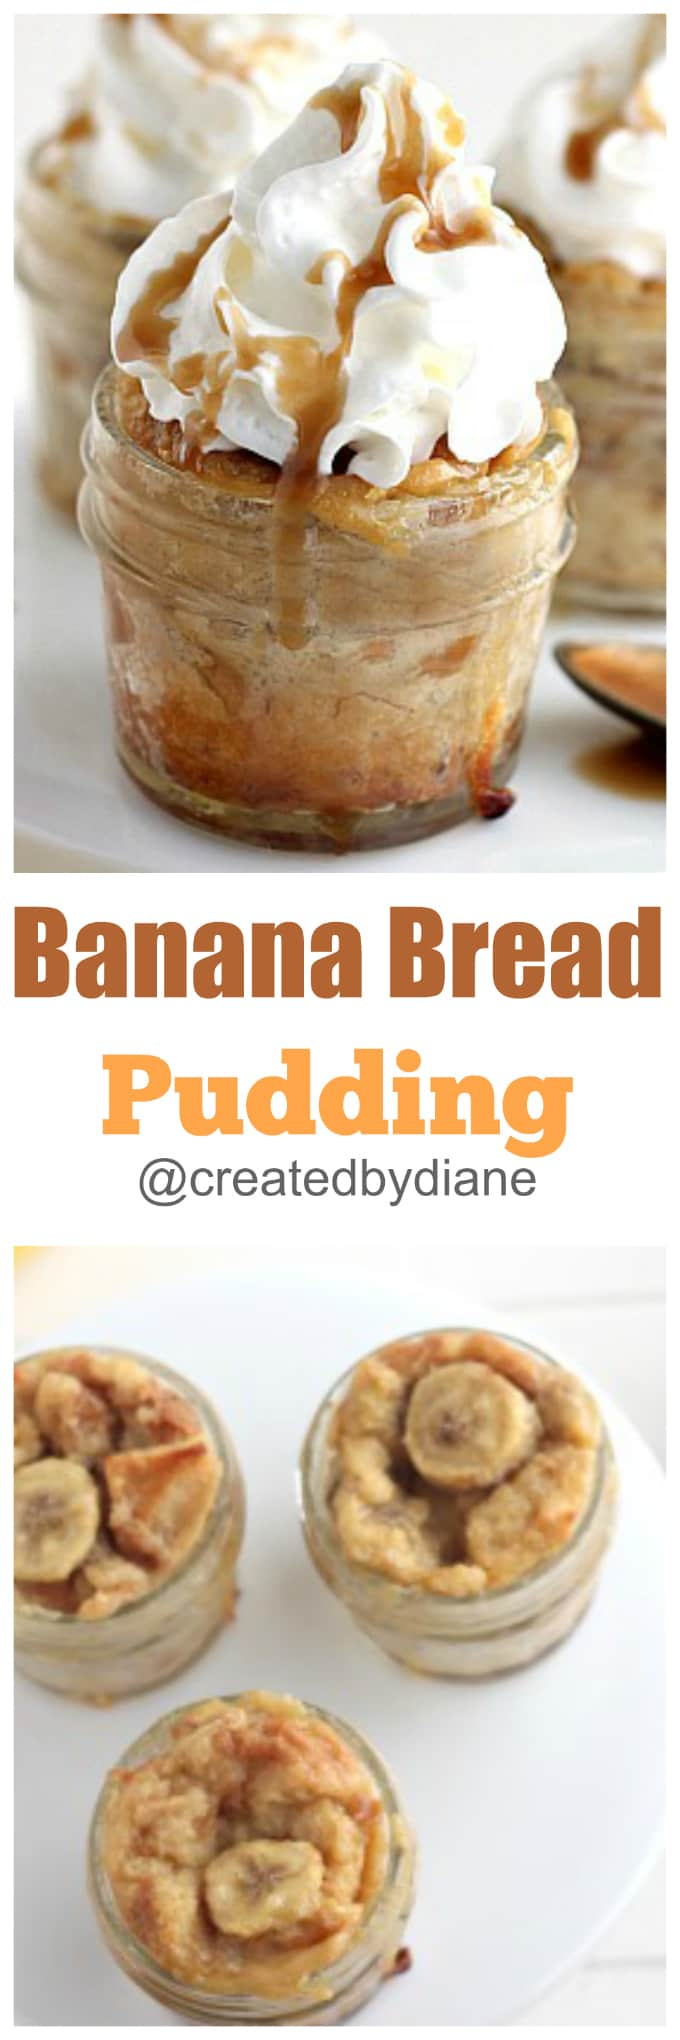 banana-bread-pudding-createdbydiane